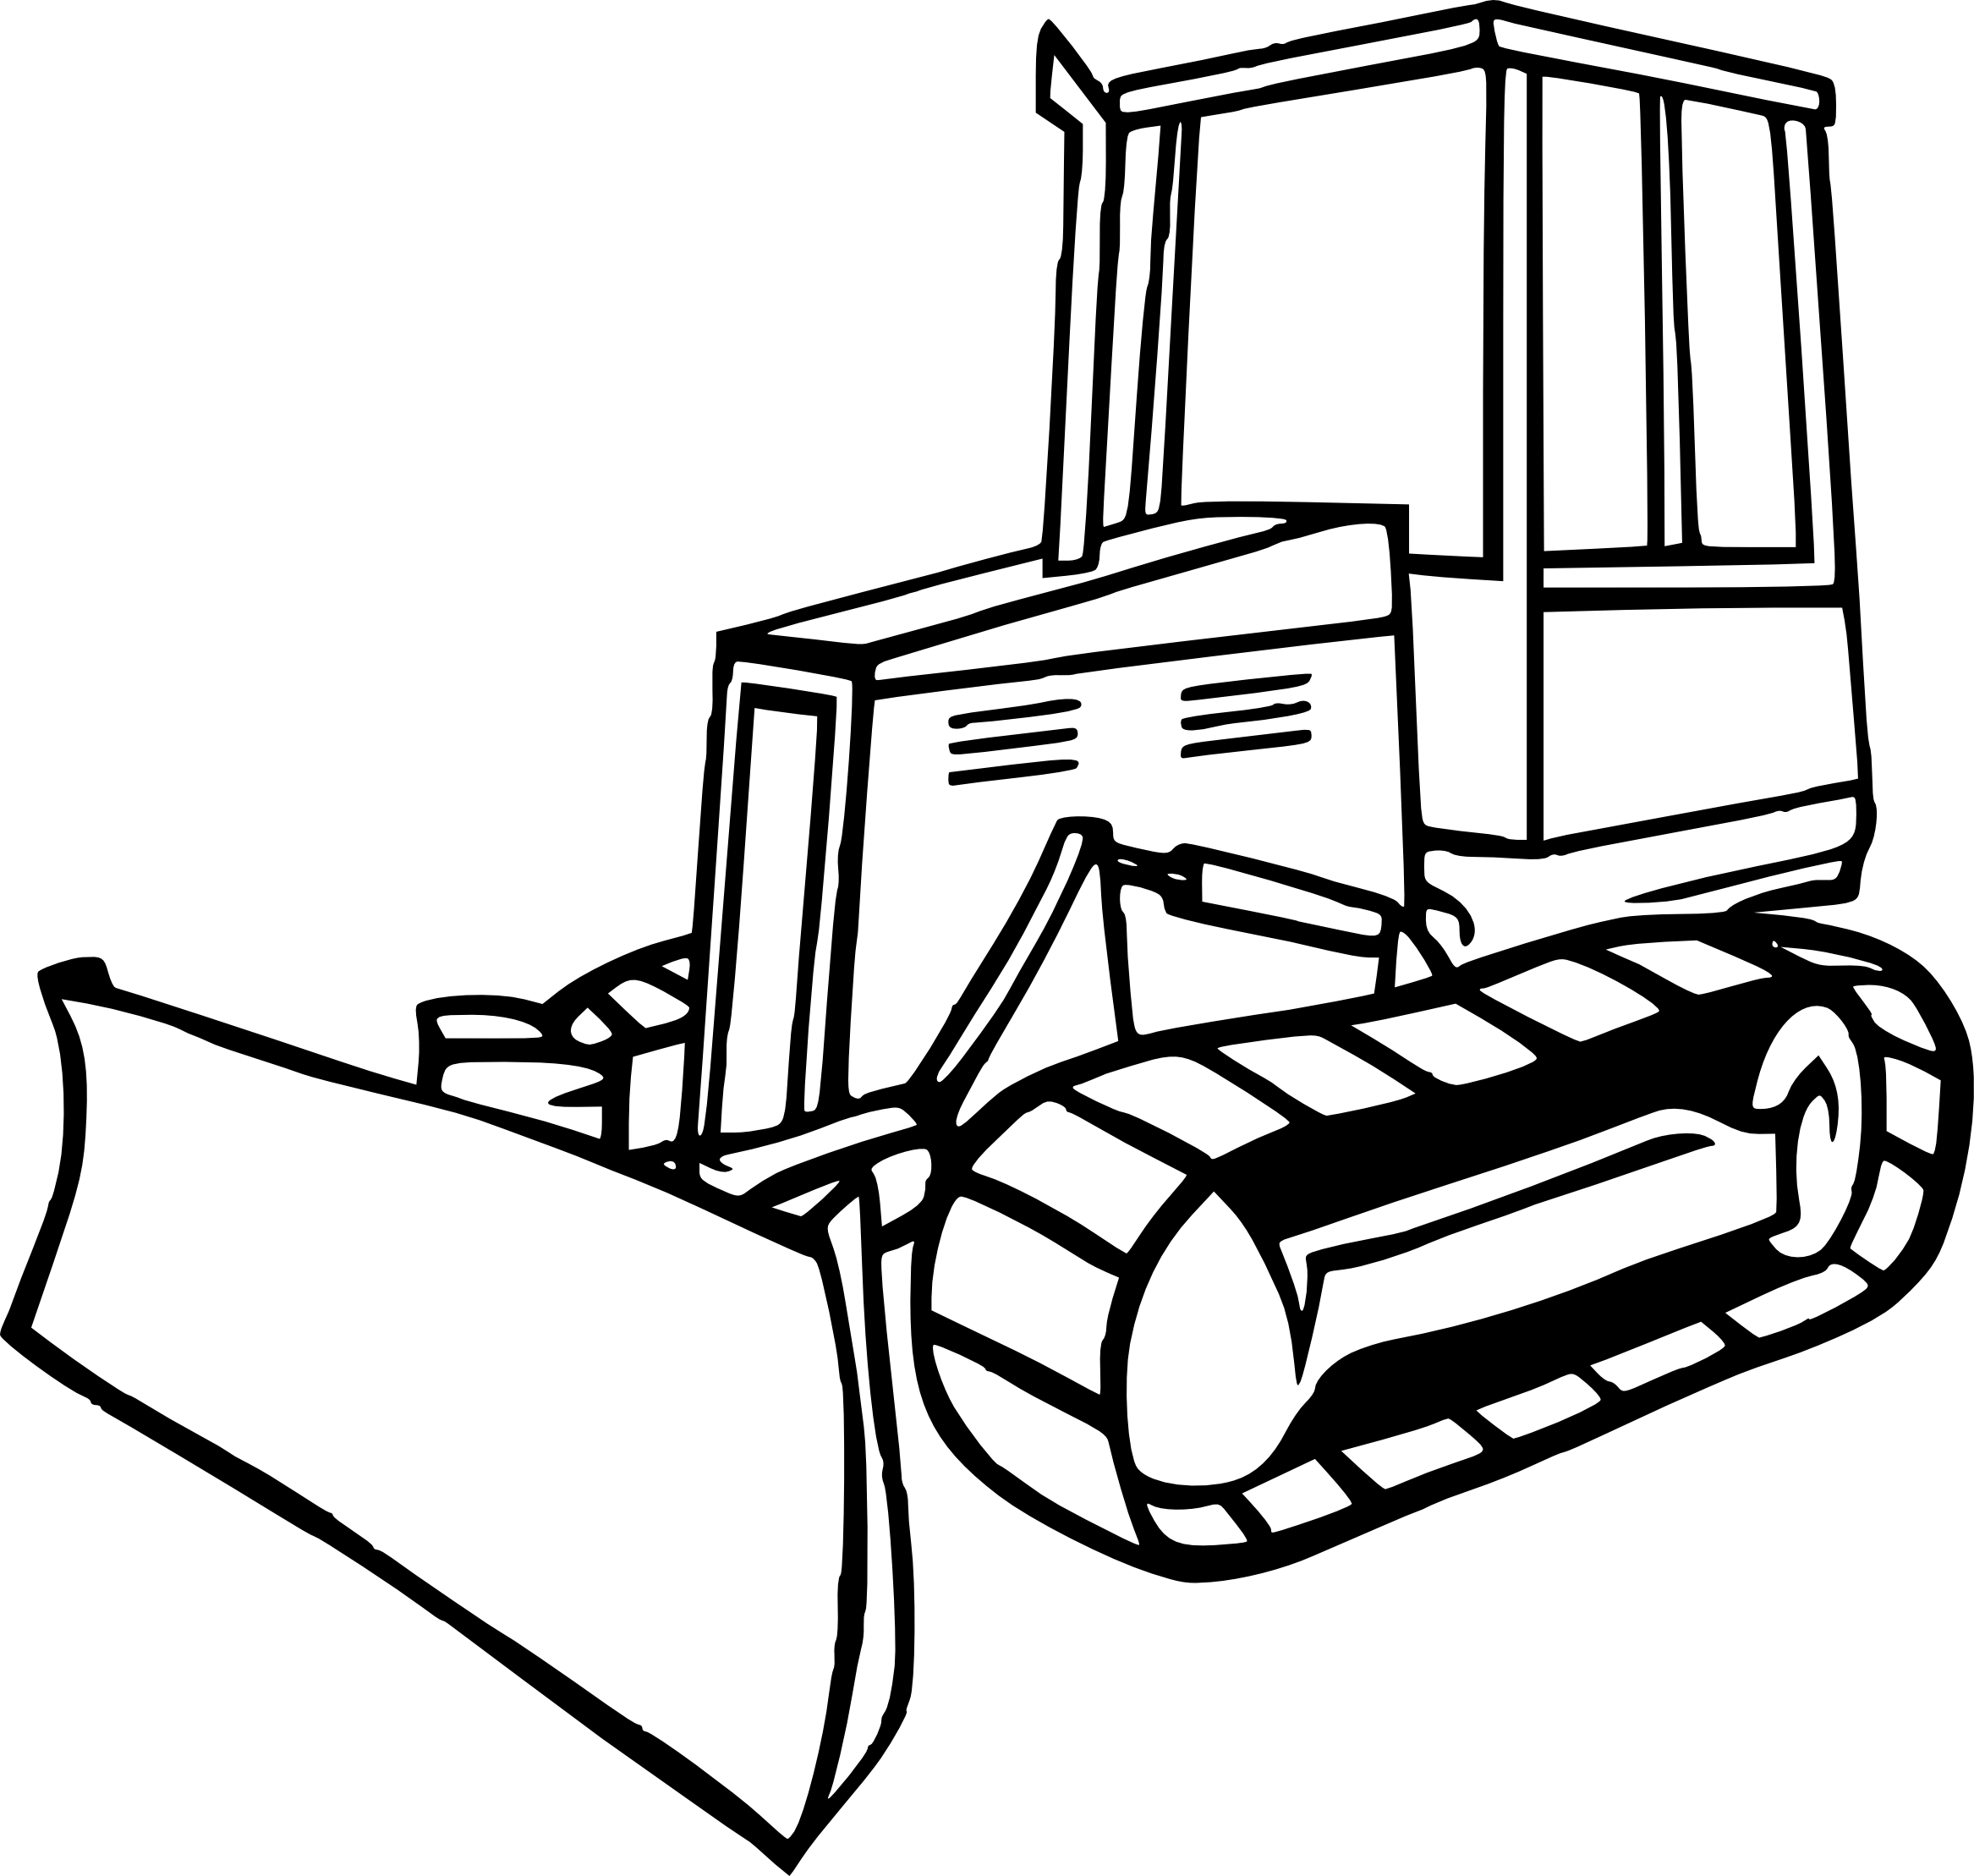 bulldozer pictures to color bulldozer coloring pages coloring pages to download and bulldozer pictures color to